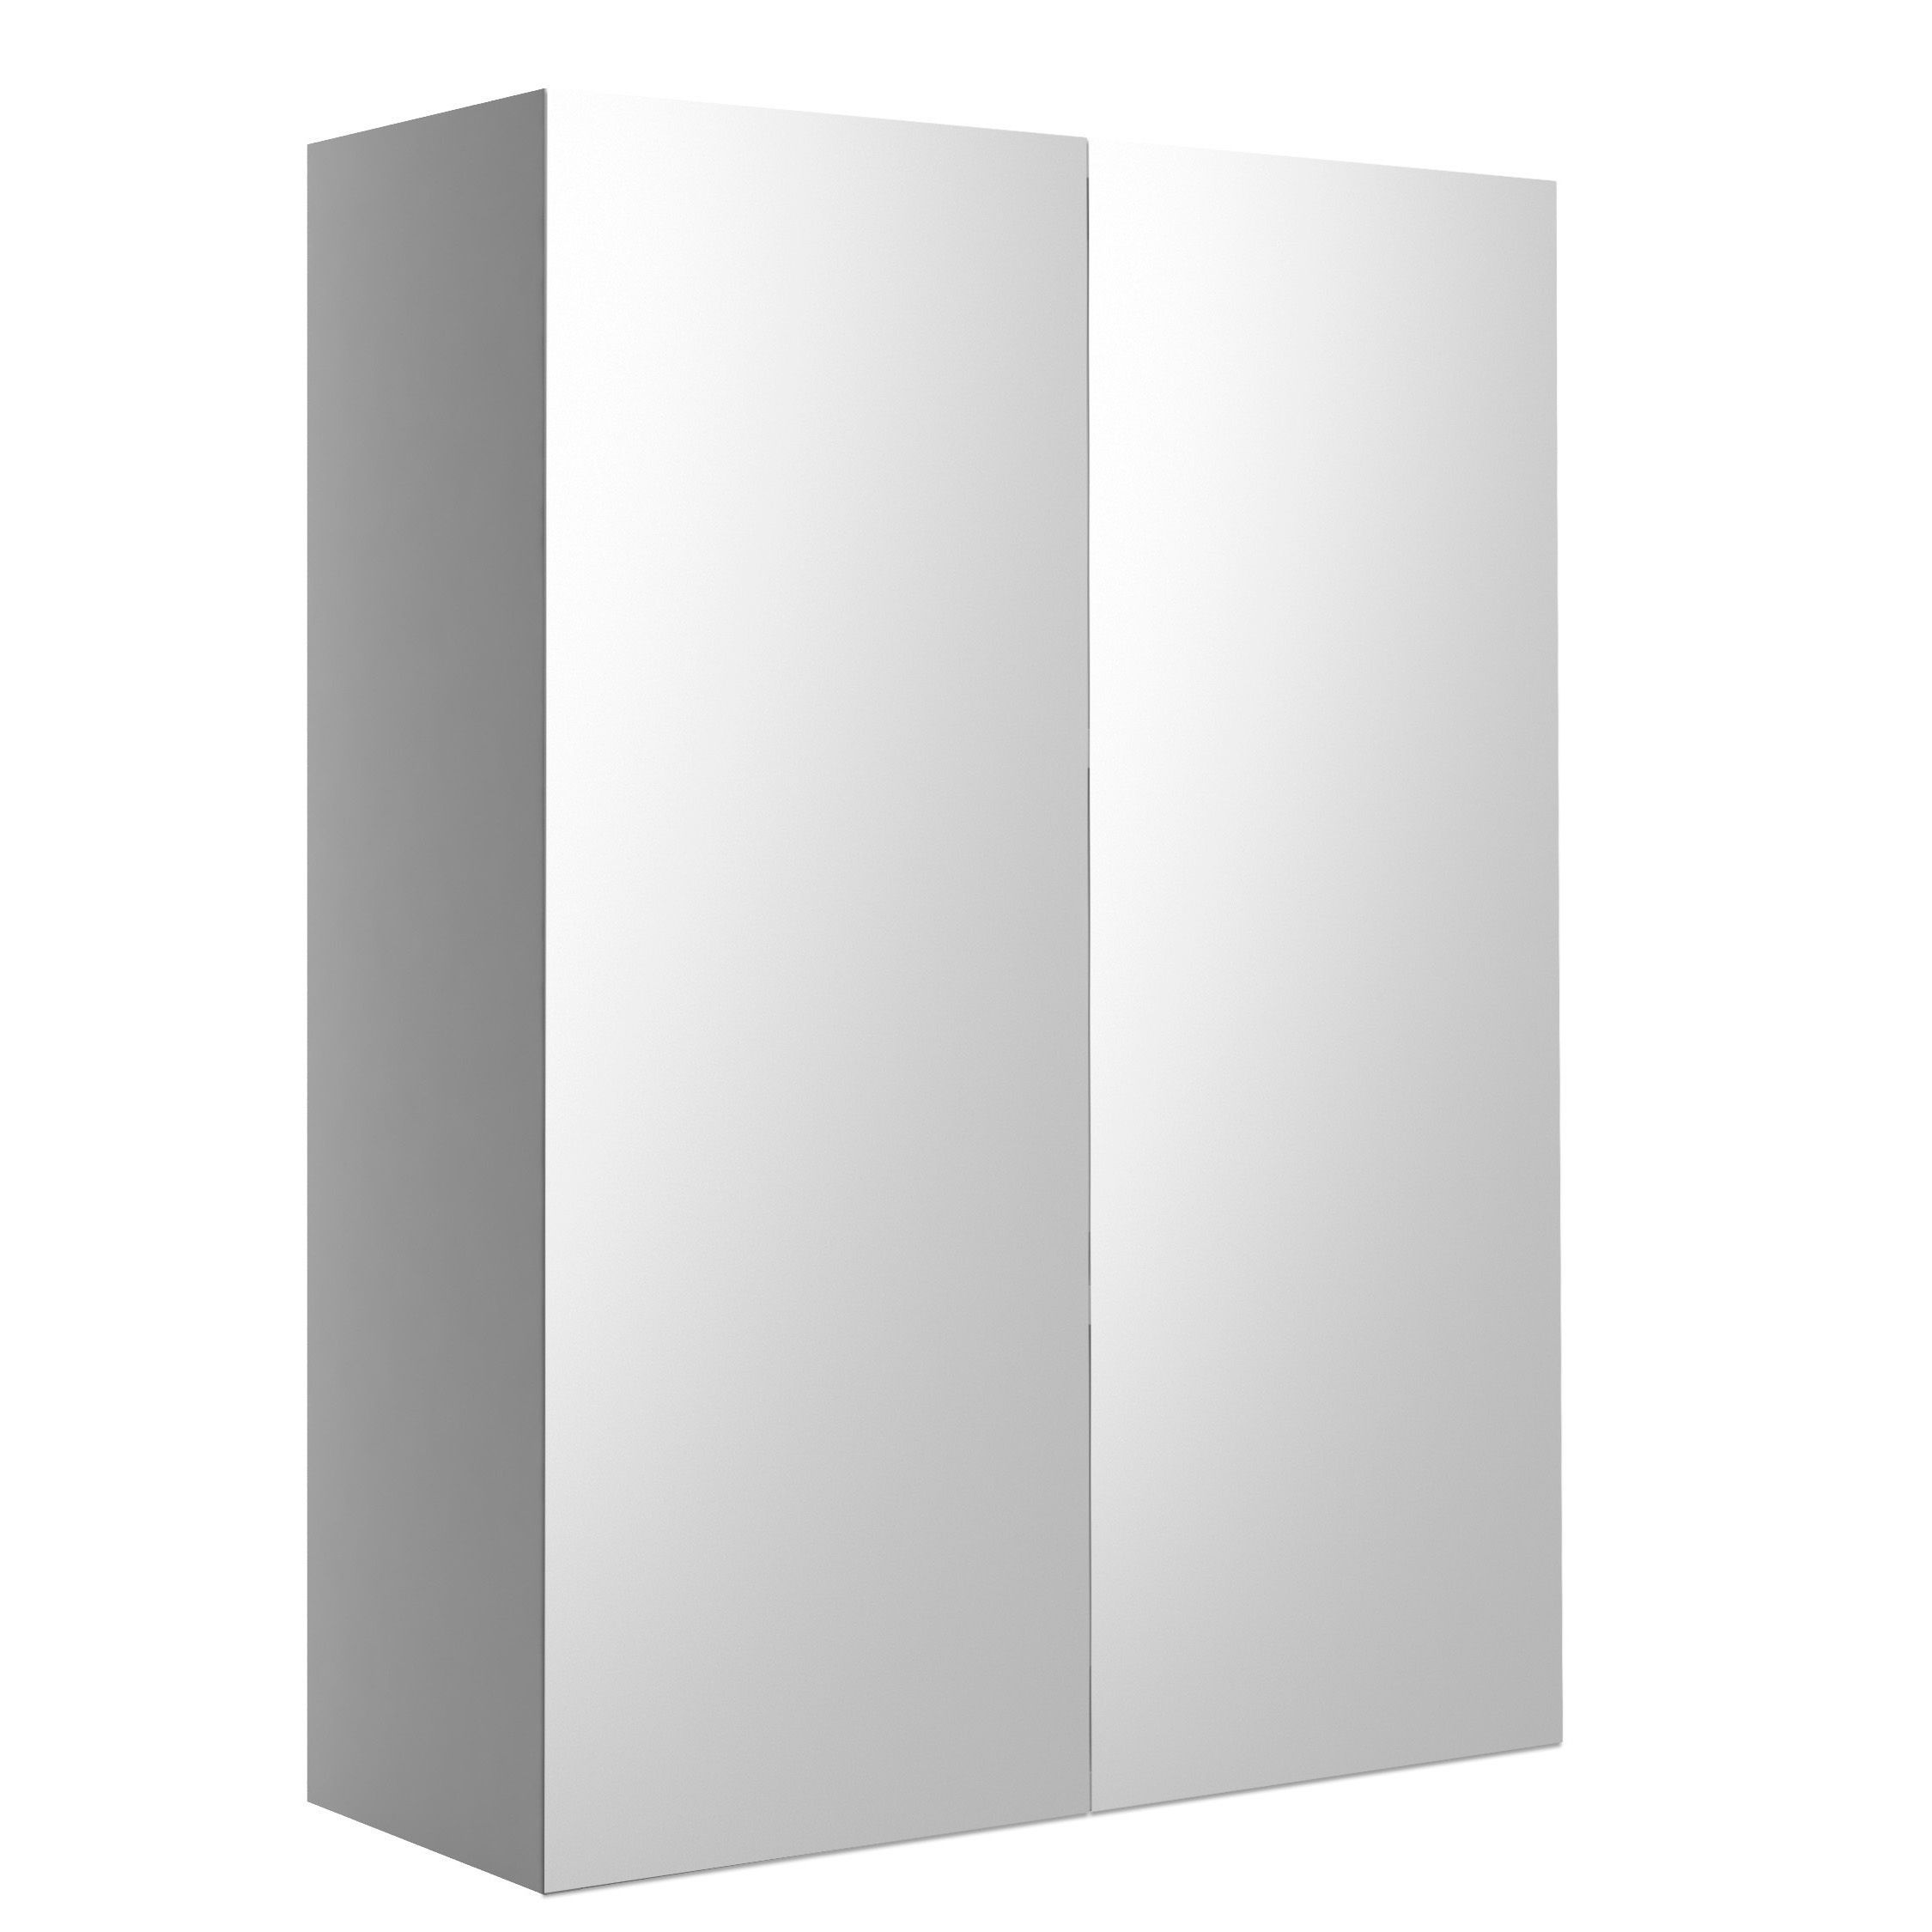 Cooke Lewis Santini Gloss White Double Door Wall Cabinet W 600mm